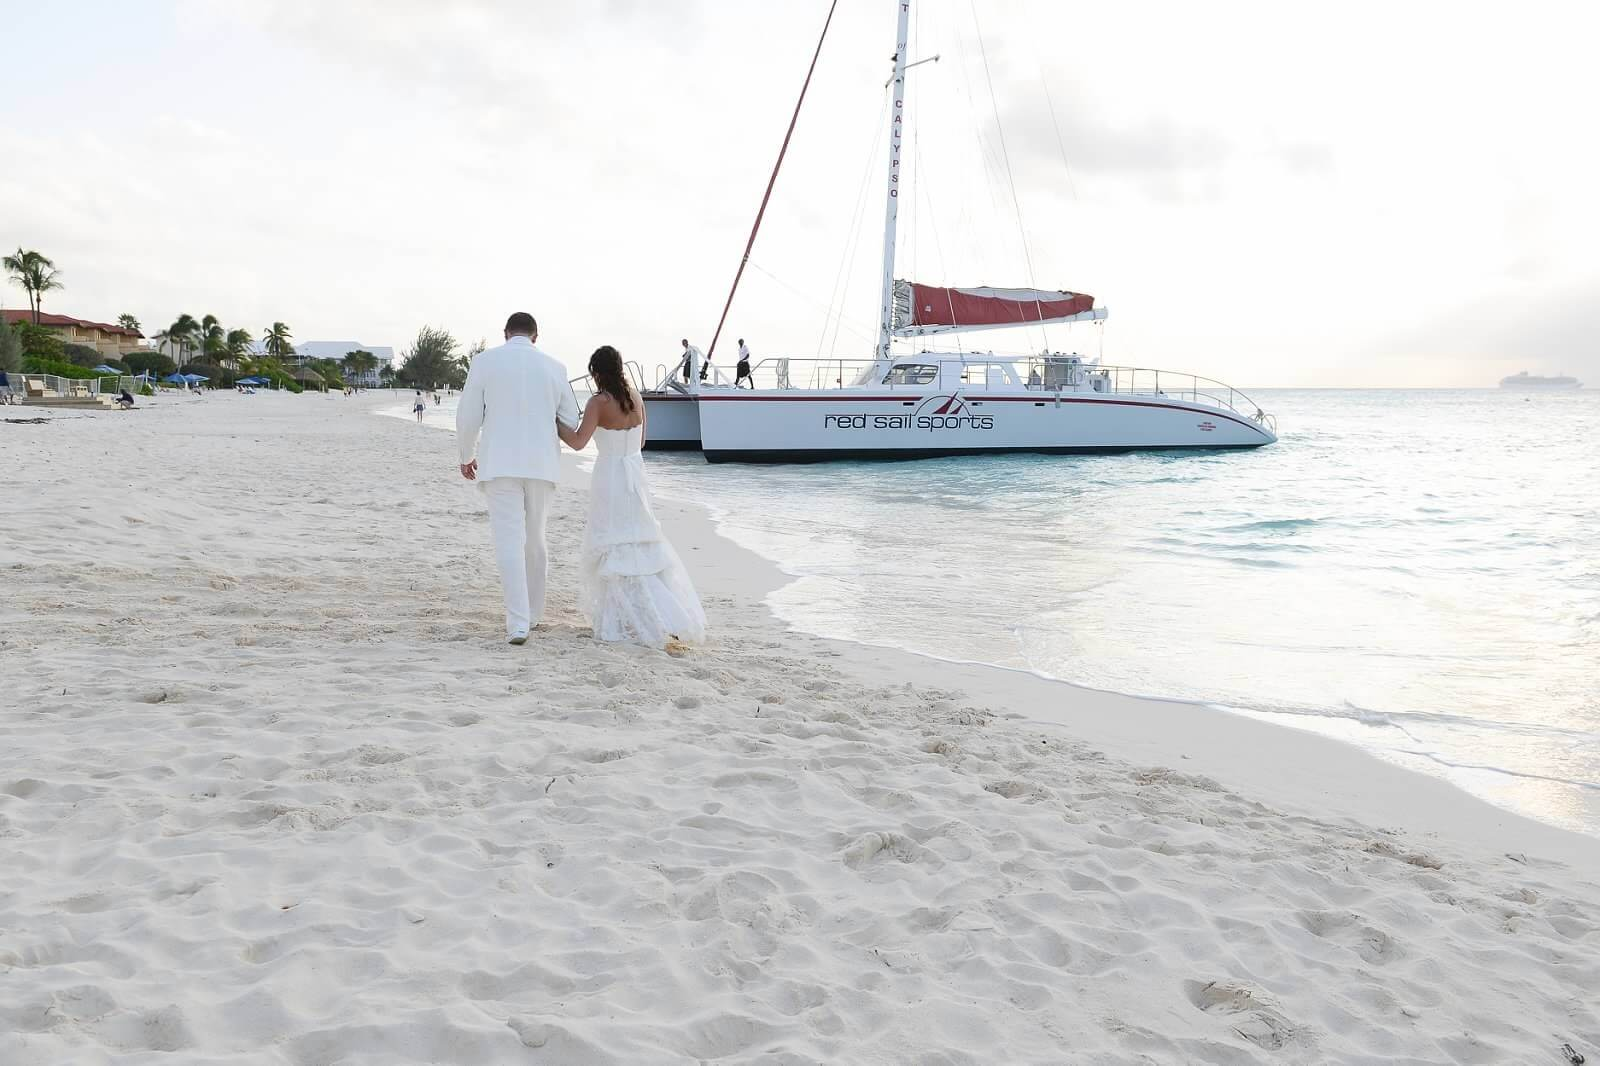 Wedding Services by Red Sail Sports - Image 5